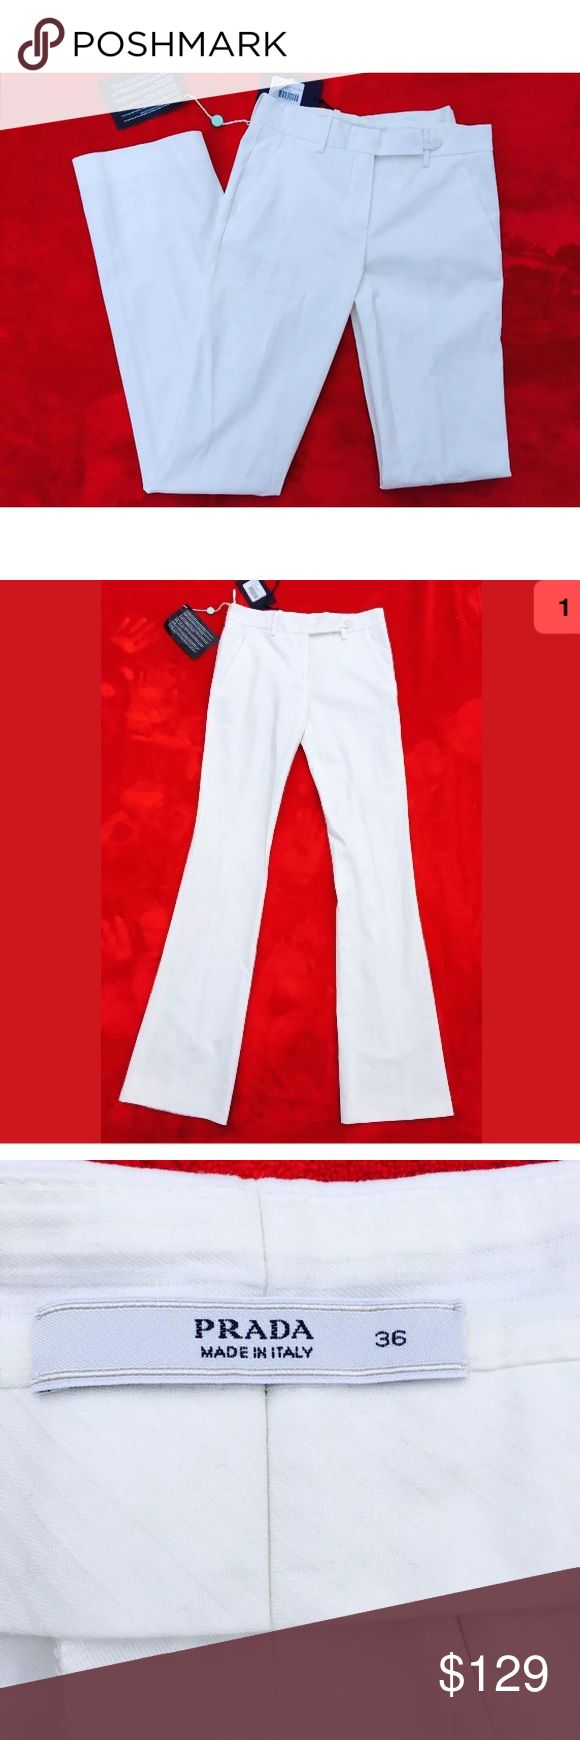 """Prada Bup Fine Gabardine Pants 36 trouser white Prada Bup Fine Gabardine Pants/Pantaloni Stretch. White/Bianco, Size 36. Made in Italy. New With Tags.   Approximate Measurements:  Waist: 29""""  Front rise: 9""""  Hips: 36""""  Inseam: 34.5""""  Leg opening: 9""""  (Measured laying flat, side to side, not doubled)  Weight: 13.5 oz.   Item ships in one business day! Check out my other listings, I will combine shipping costs. From a smoke-free home.  Thank you! Prada Pants Trousers"""